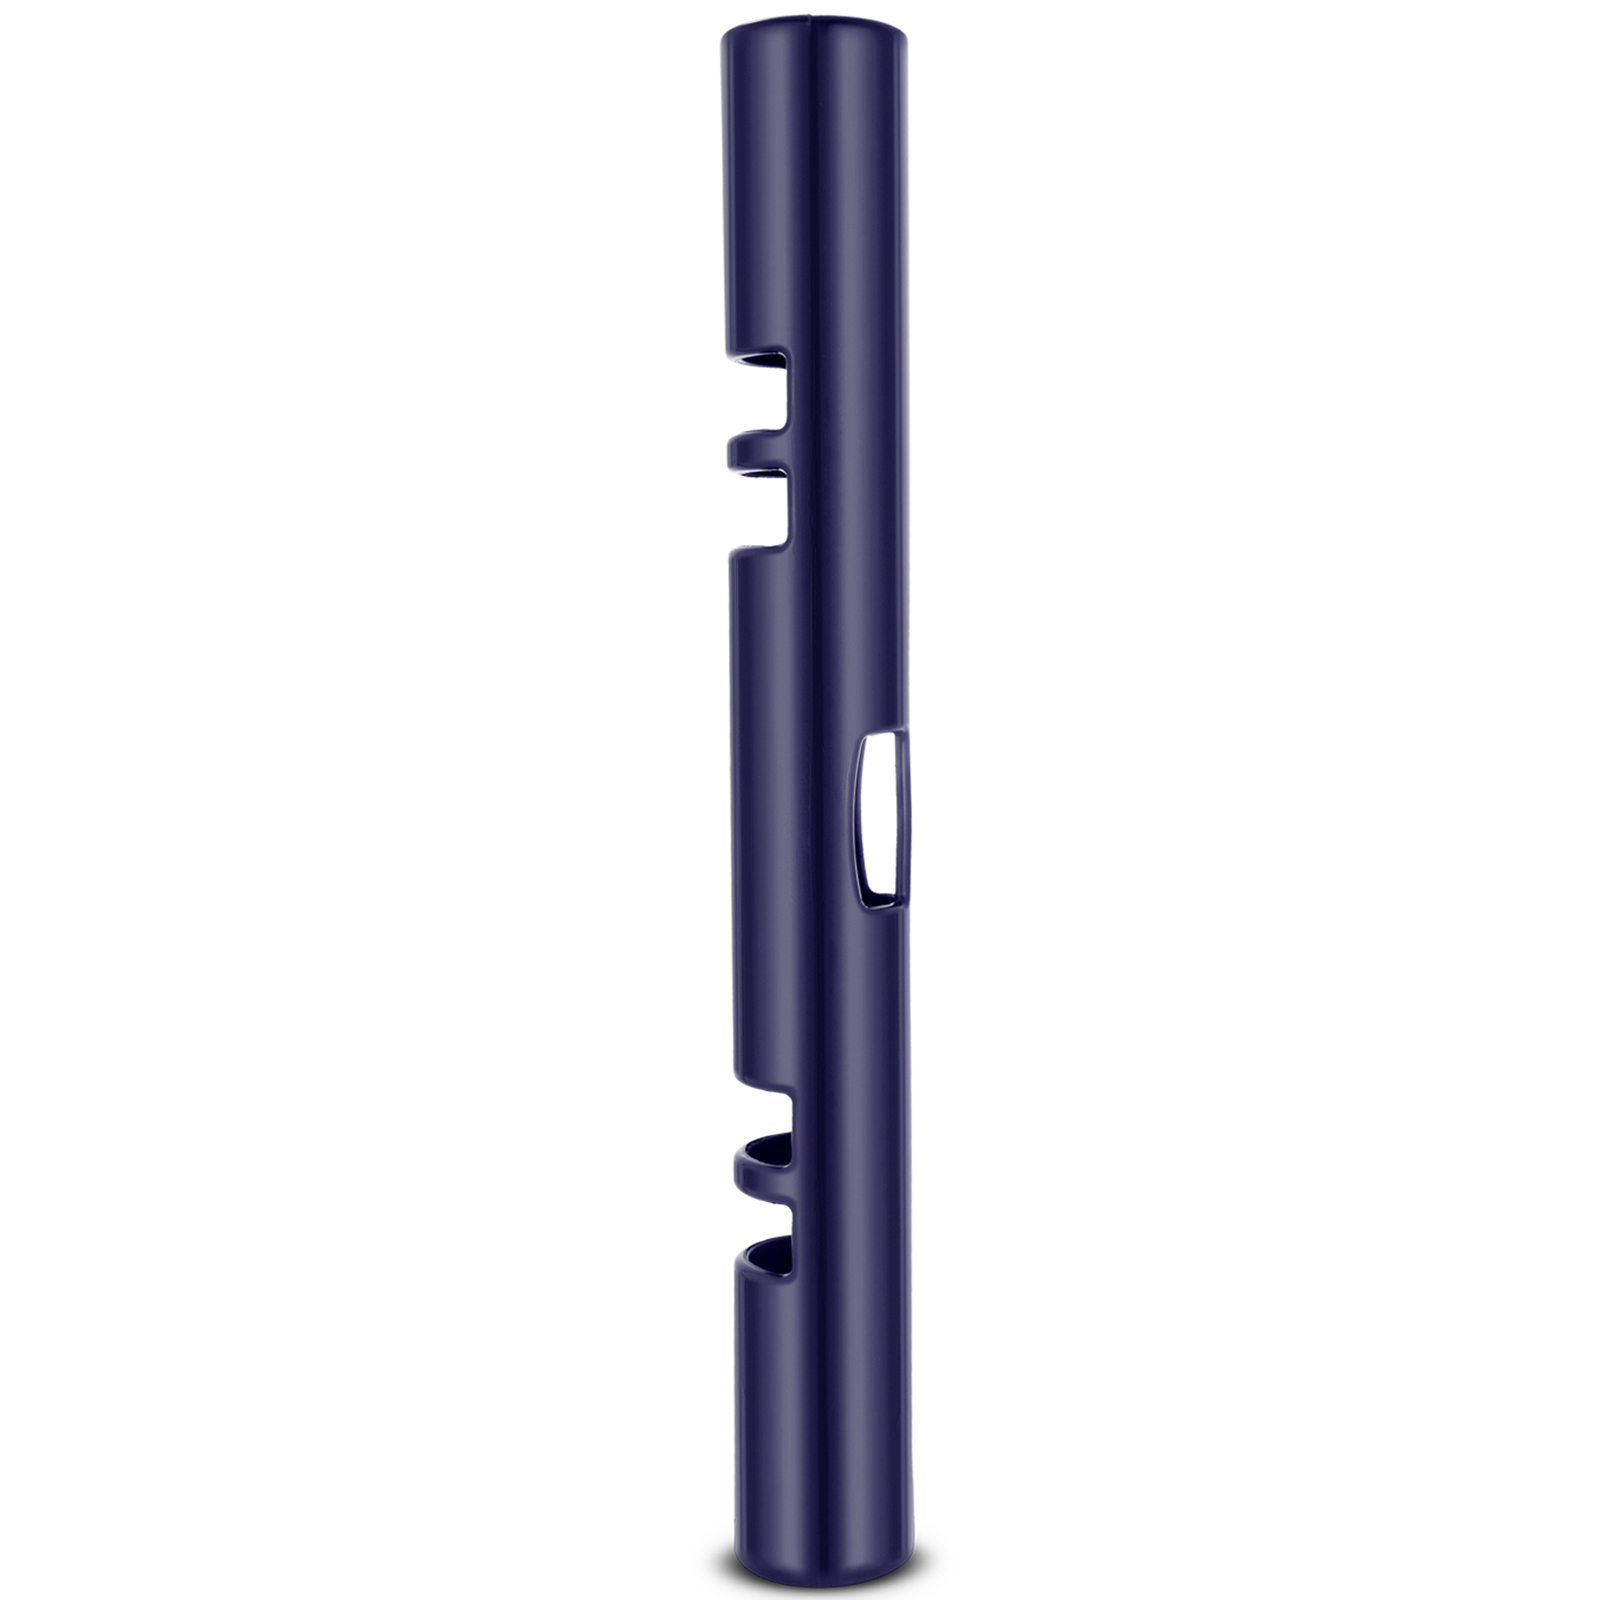 Vipr-Fitpro-Fitness-Tube-Loaded-Movement-Training-weightlifting-4-6-8-10-12-Kg thumbnail 155